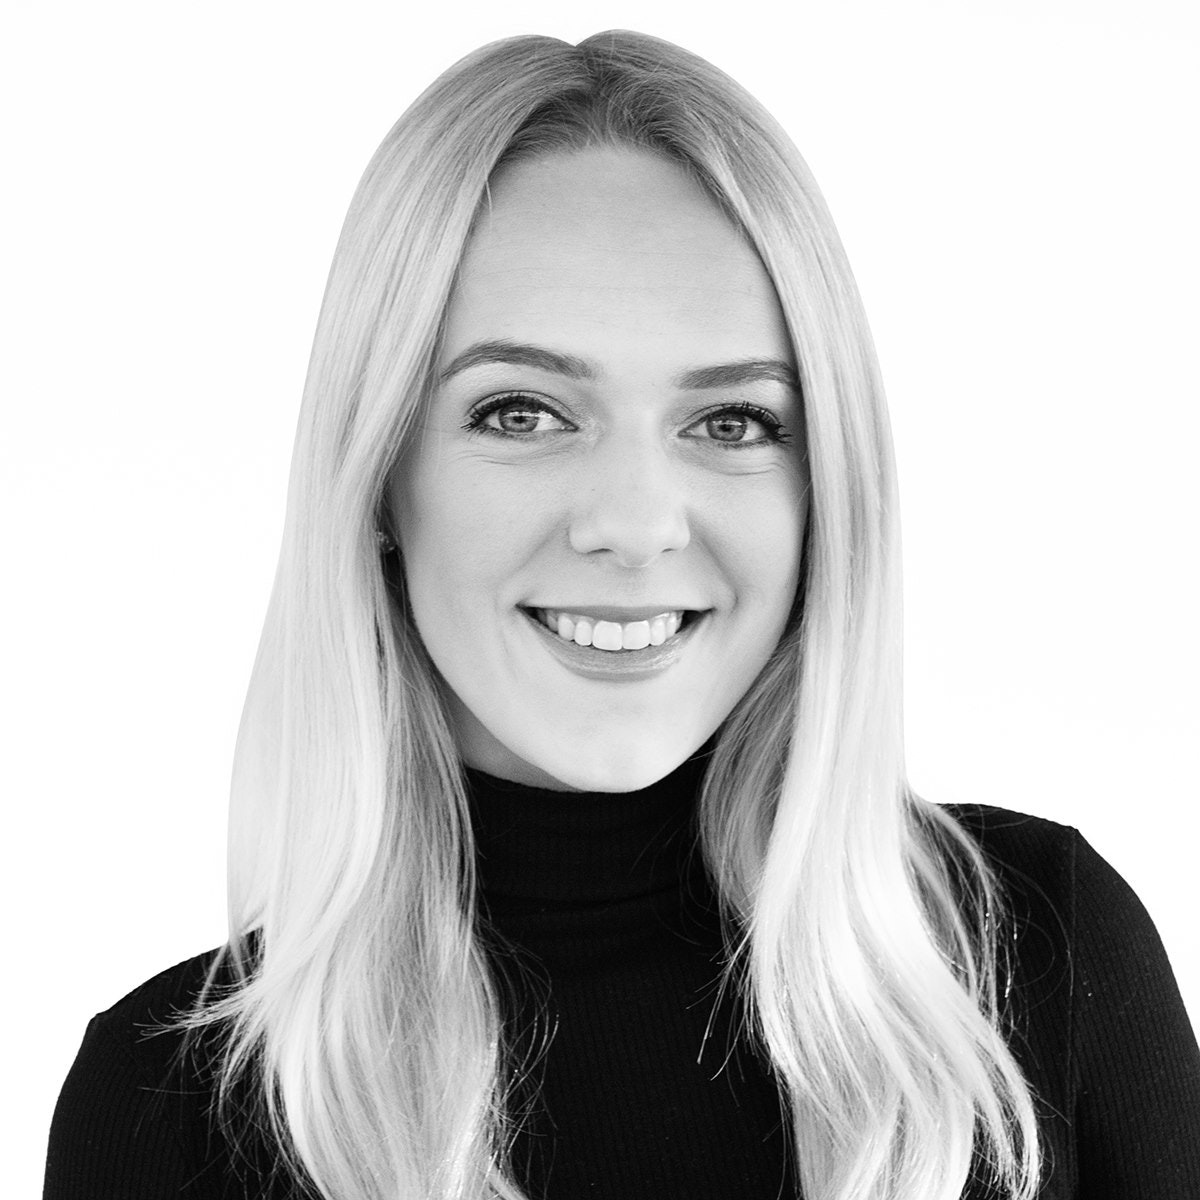 Connie Blakemore Client Experience Specialist at the Inspiring Travel Company